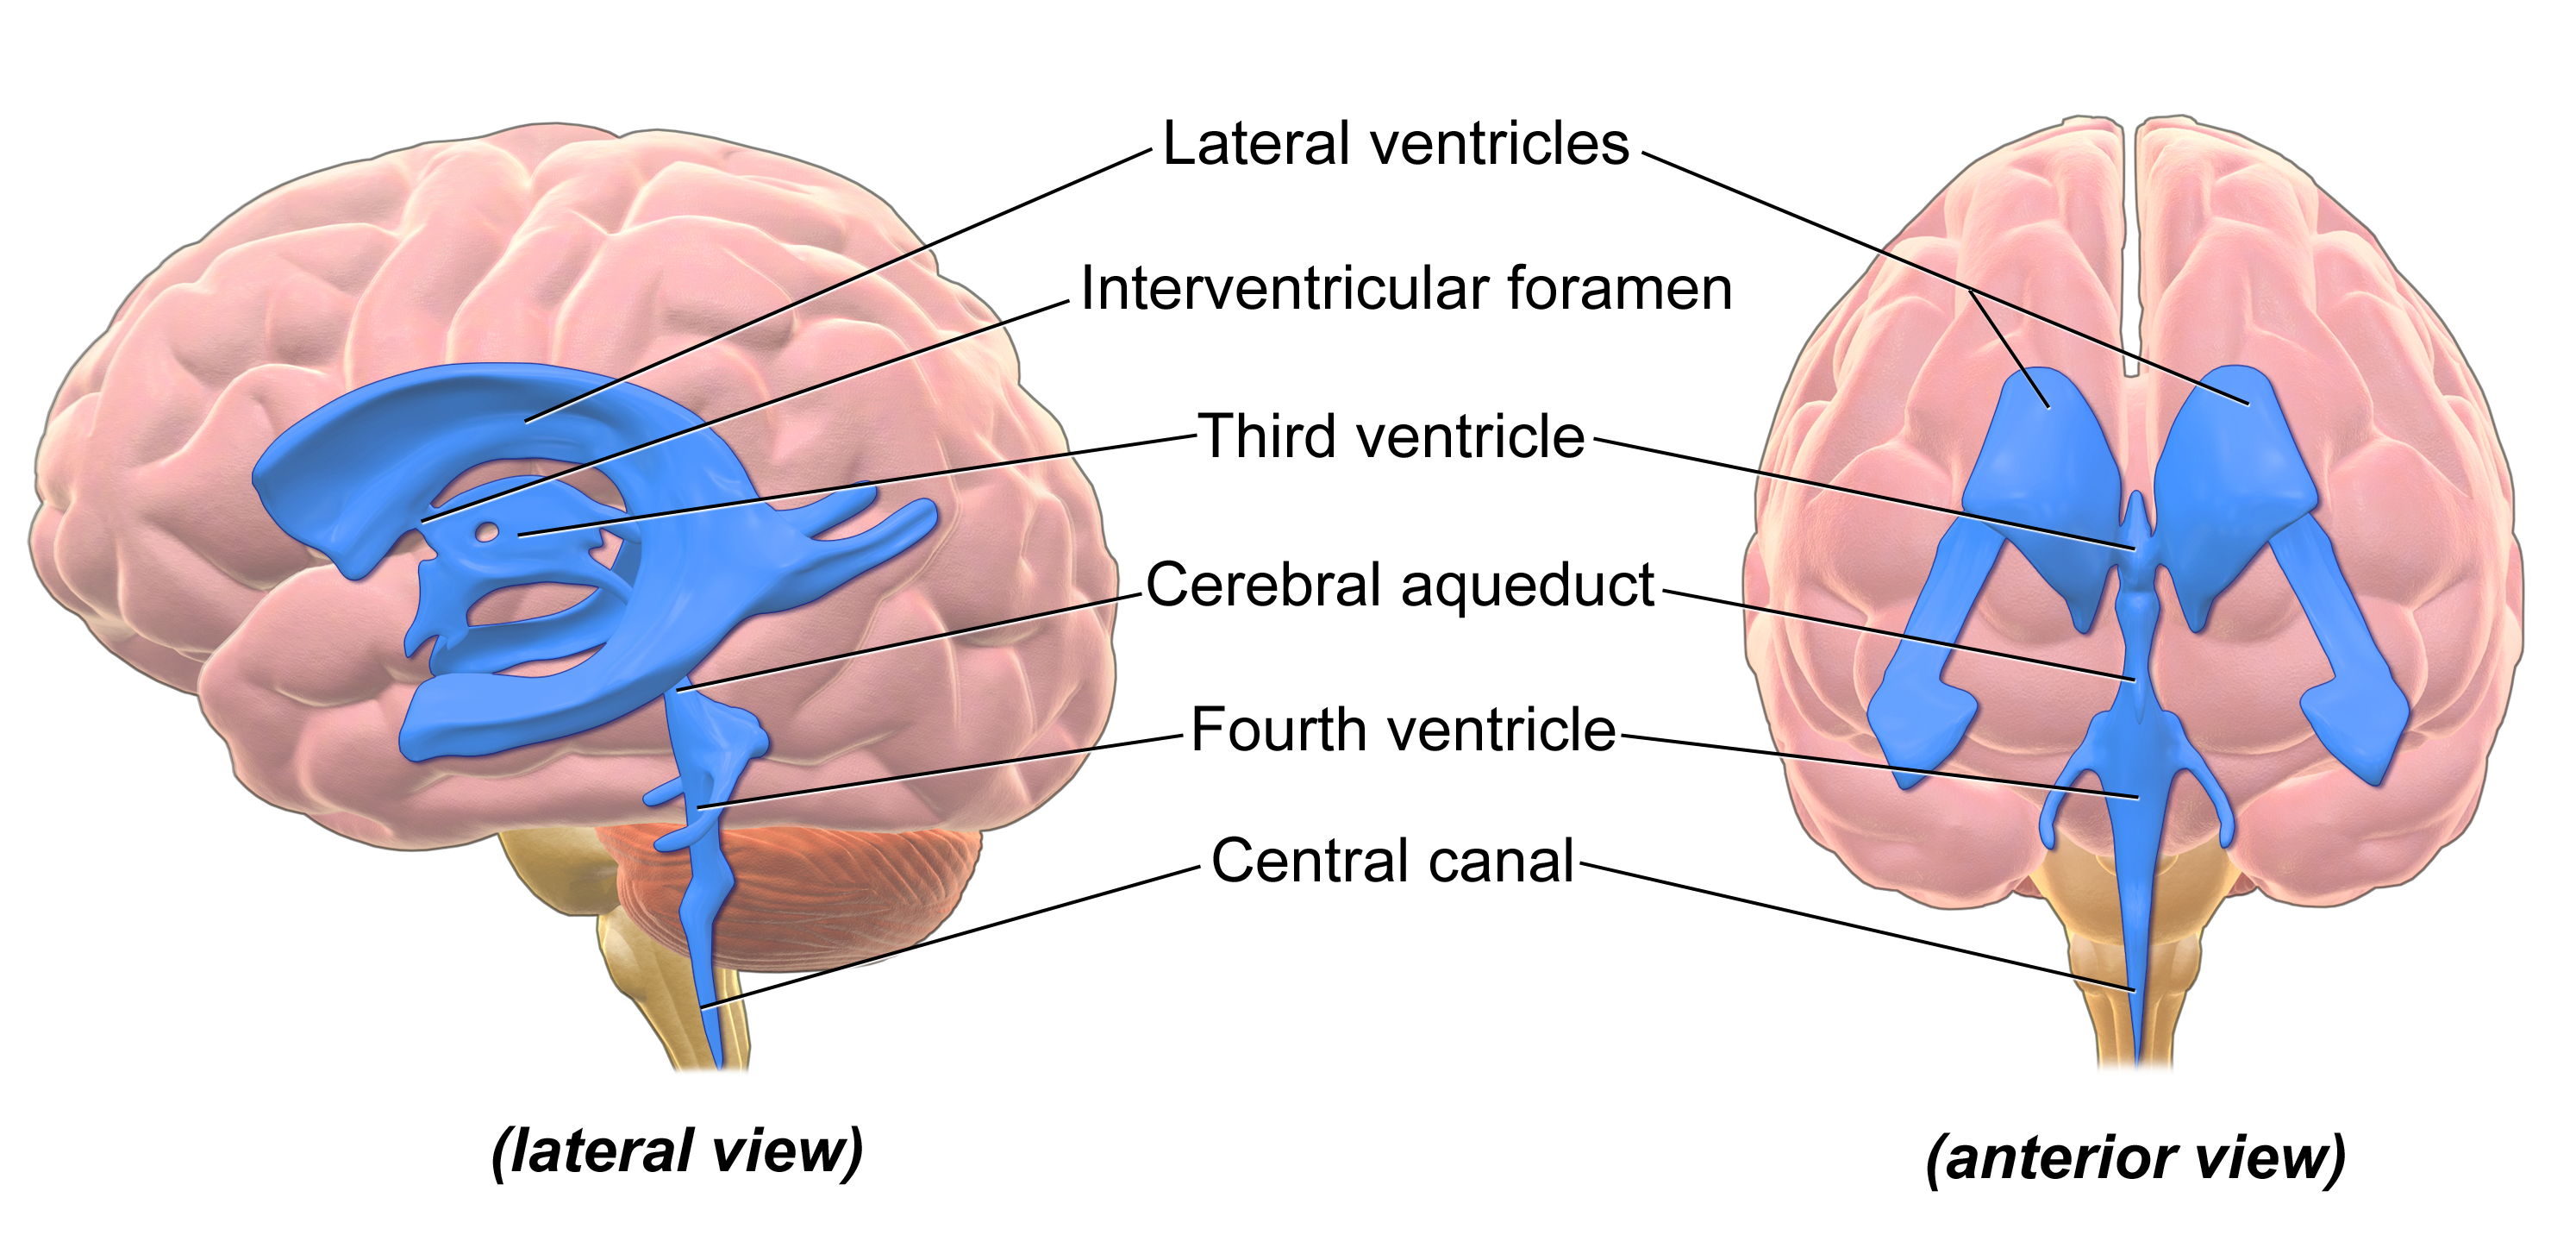 Ventricular System Of The Brain Ventricles Of The Brain With Stand